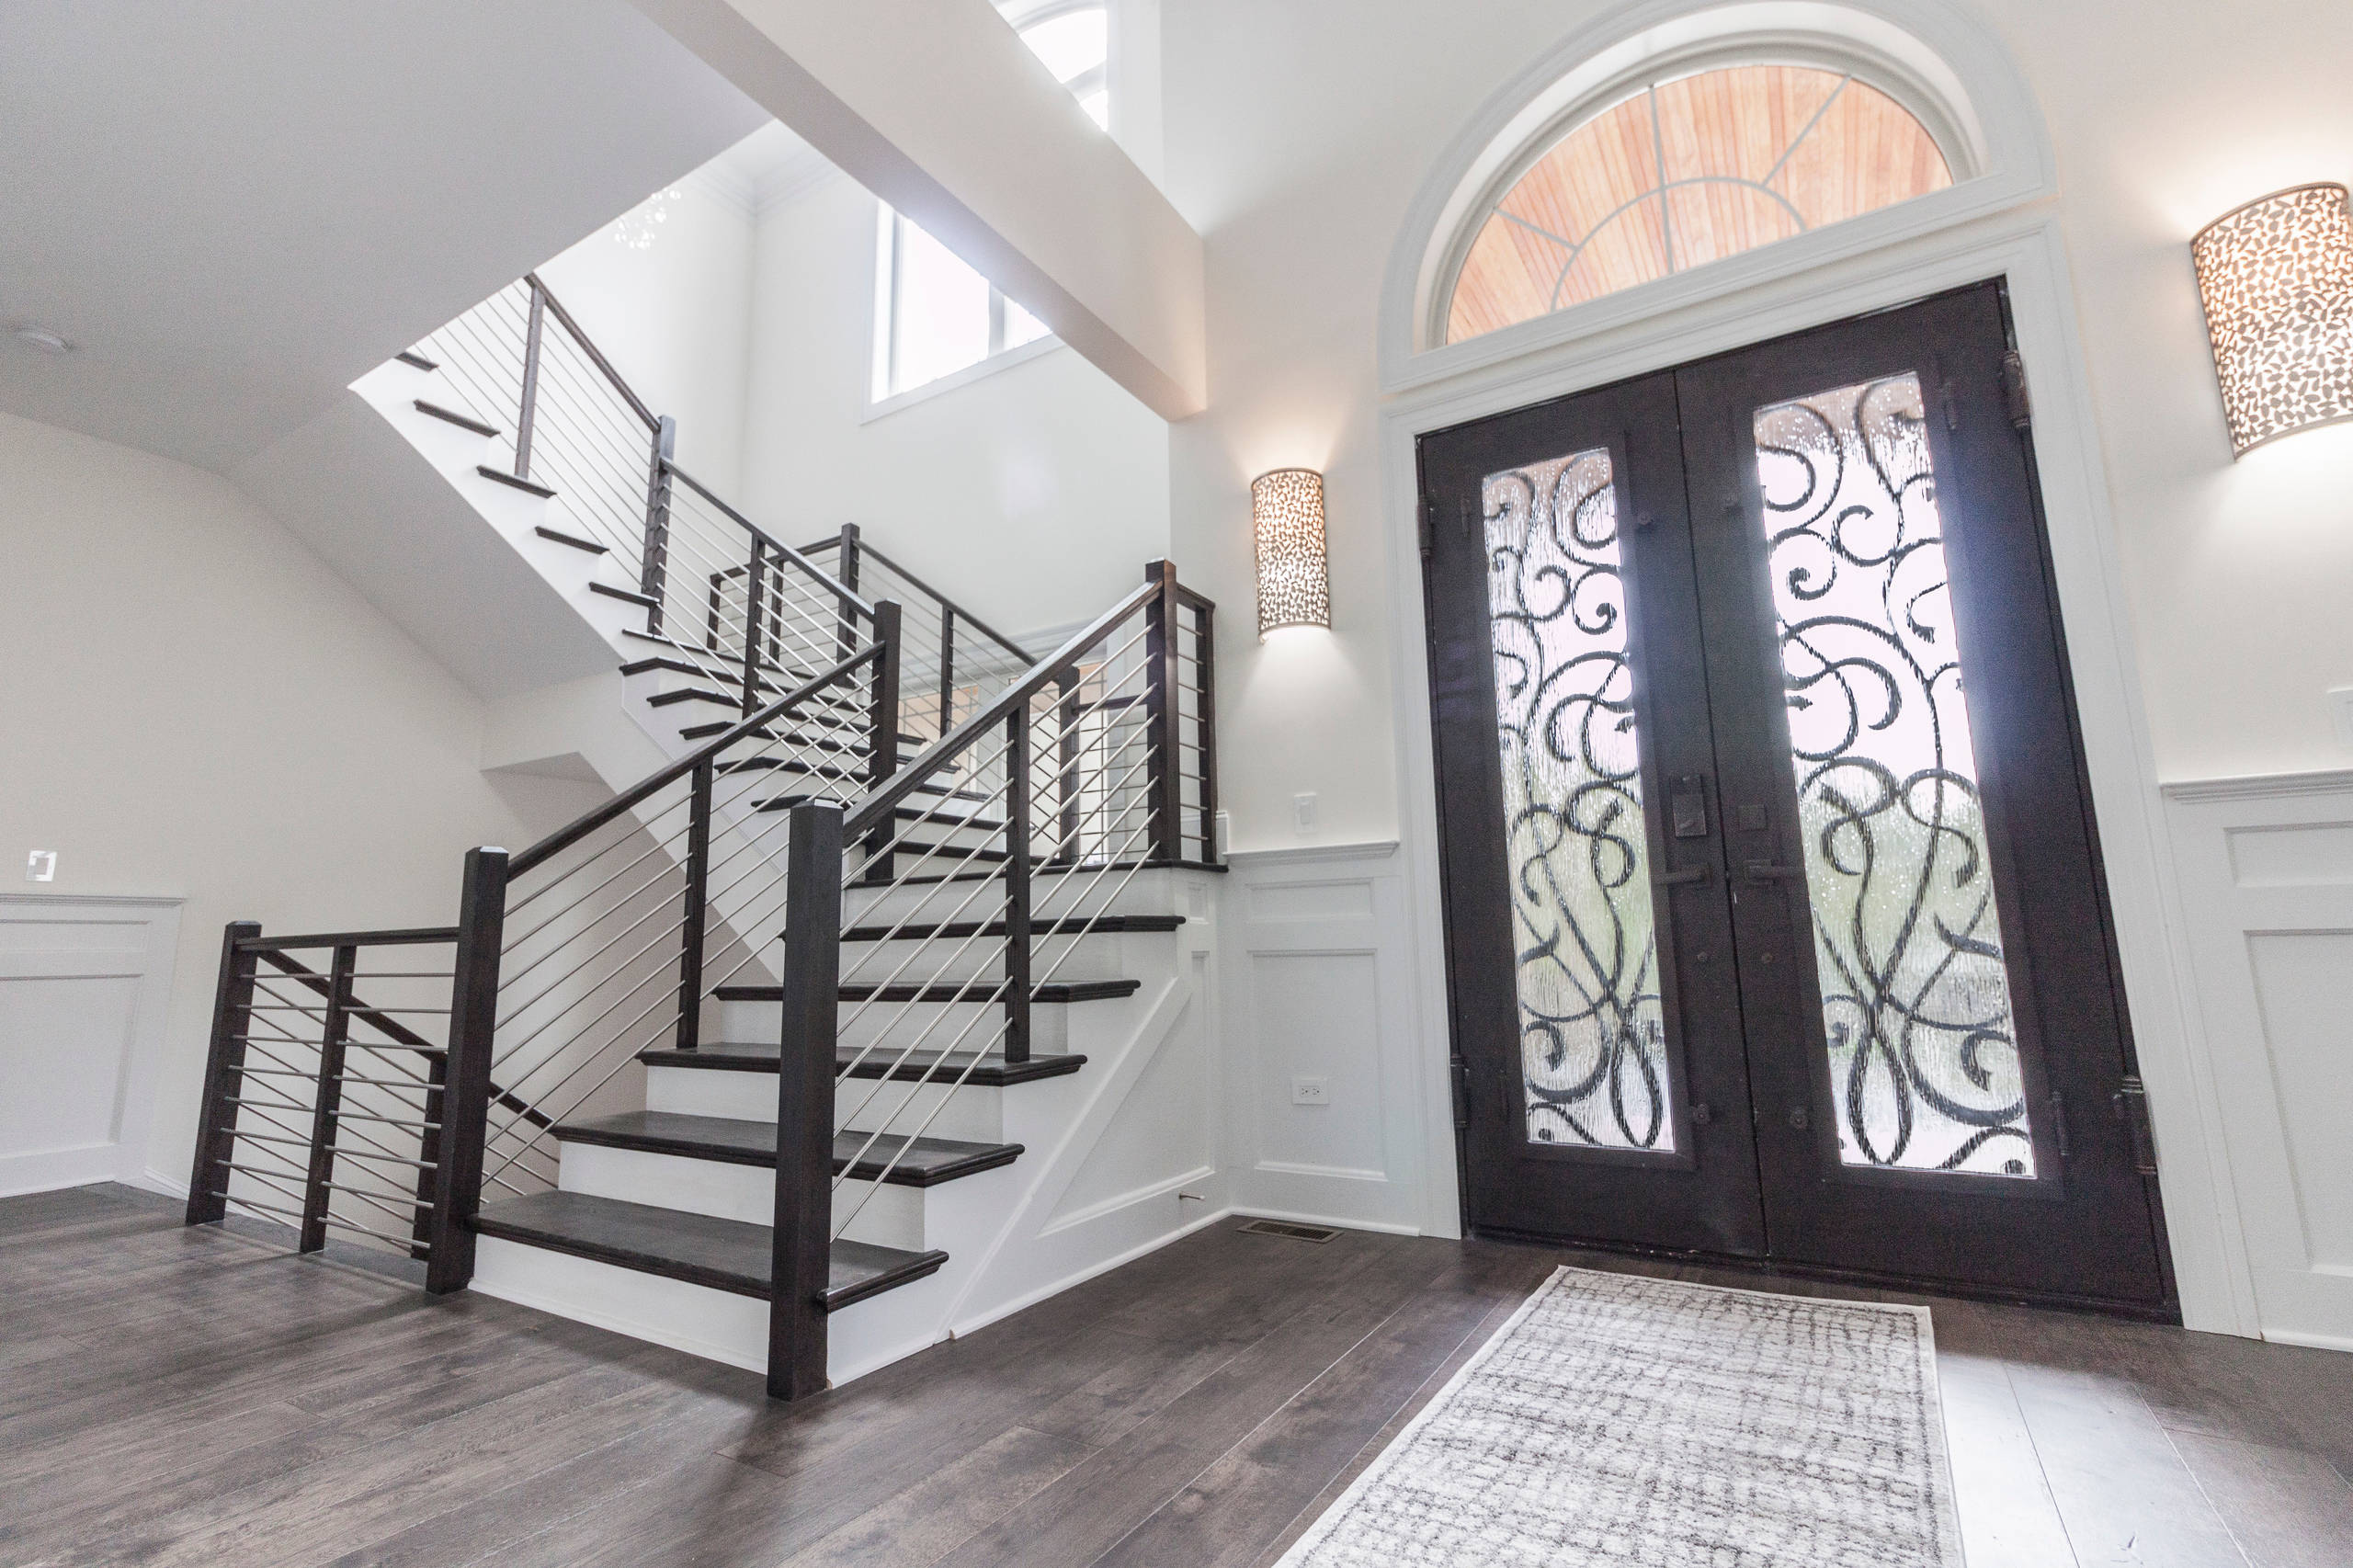 50_Striking Elegance and Simplicity in Floating Staircase, Vienna VA 22182